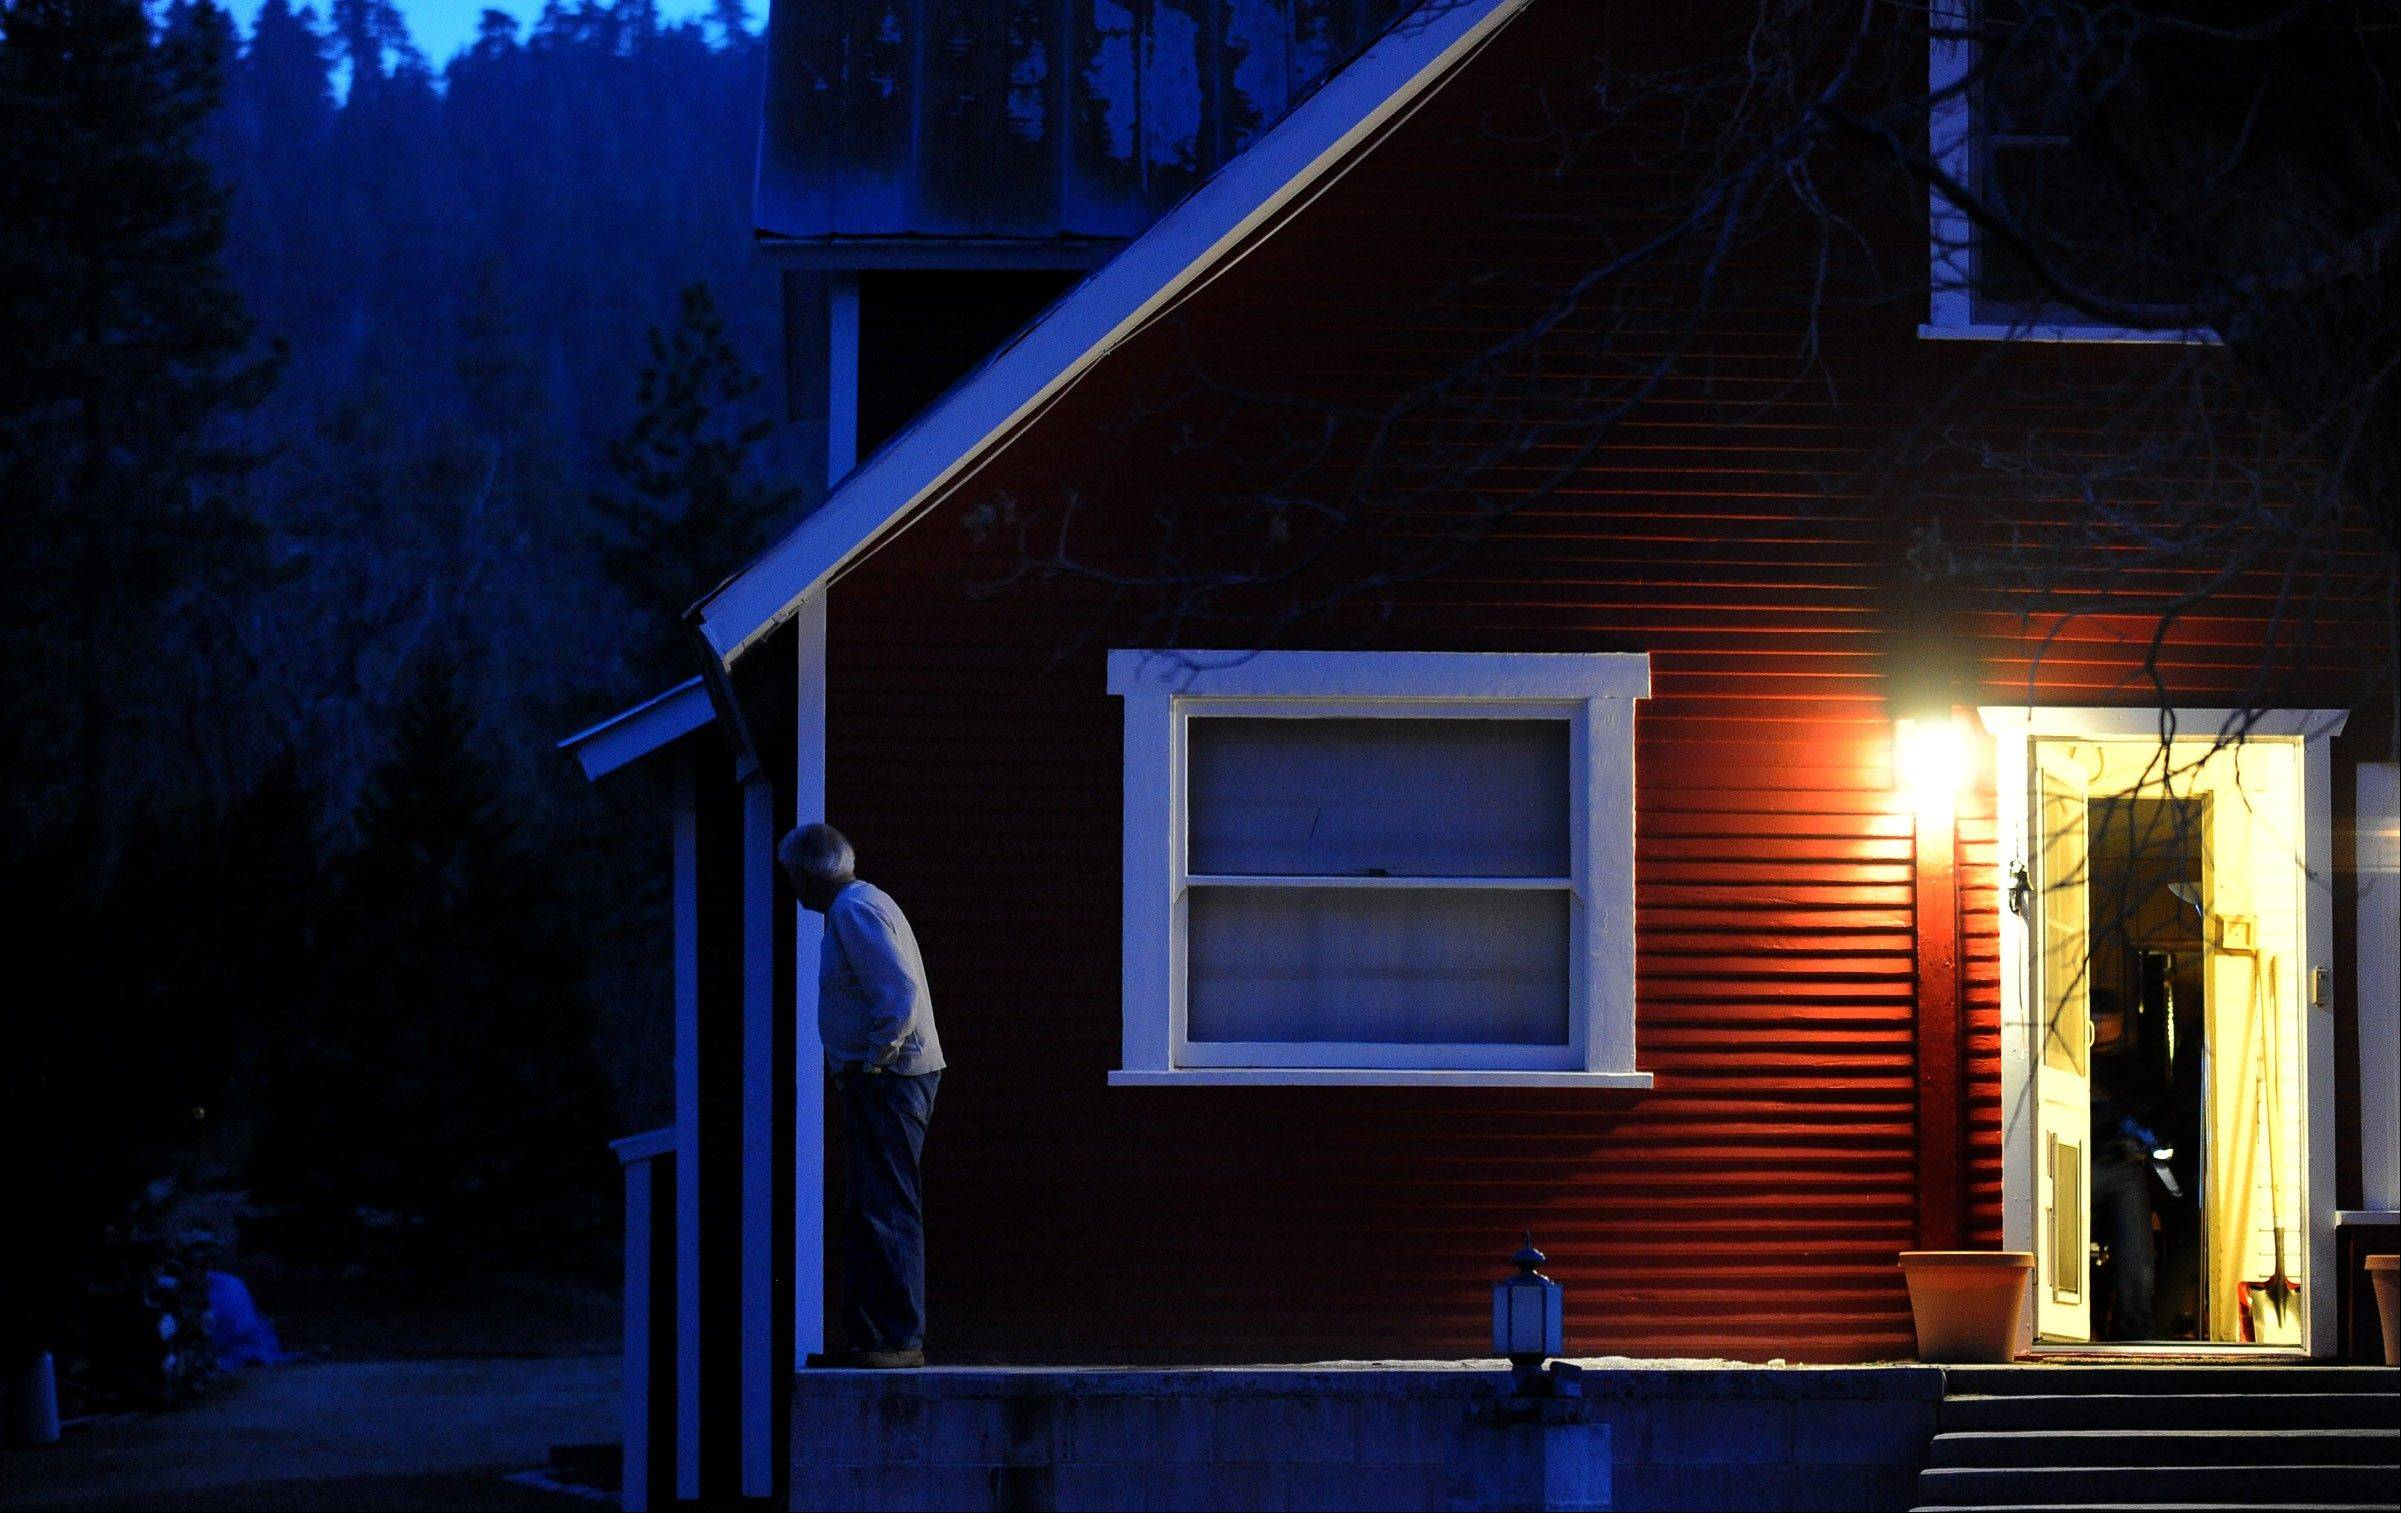 Resident John Laszloffy glances outside his home along Switzerland Avenue as officers look for murder suspect, former Los Angeles Police Department Officer Christopher Dorner, Thursday, Feb. 7, 2013, in Big Bear Lake, Calif.